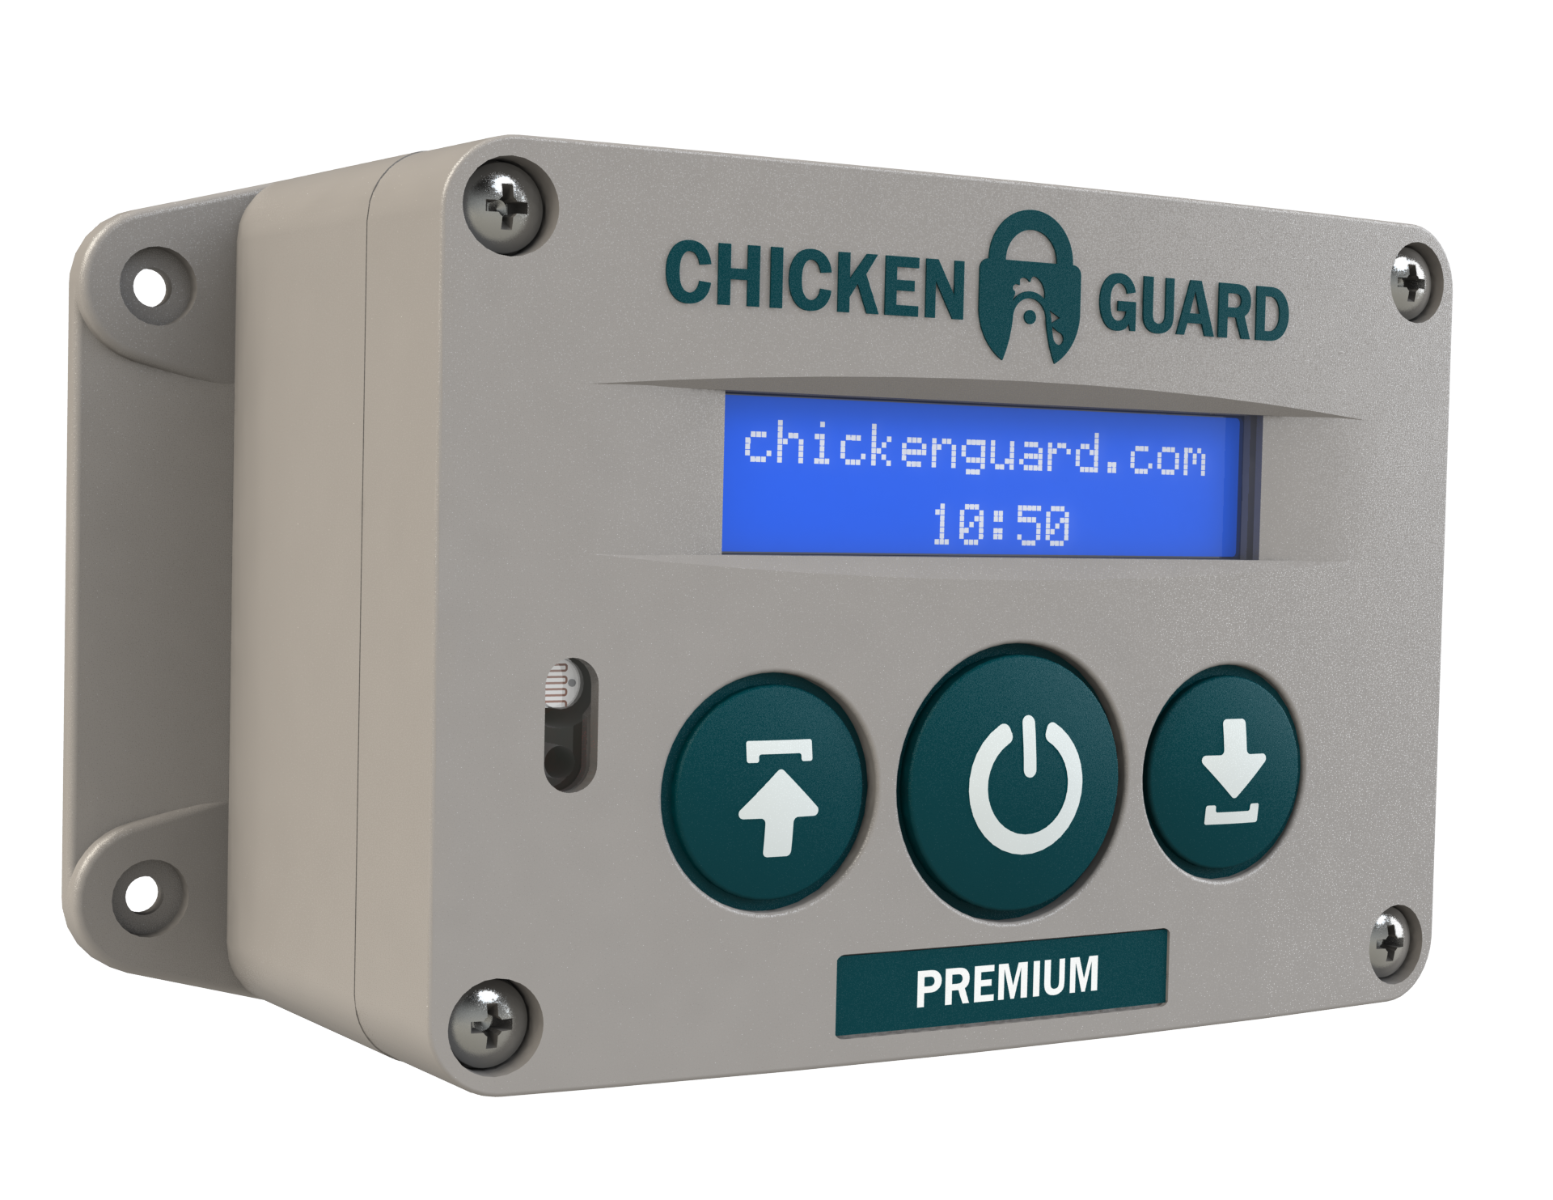 ChickenGuard Premium Version Automatic Door Opener